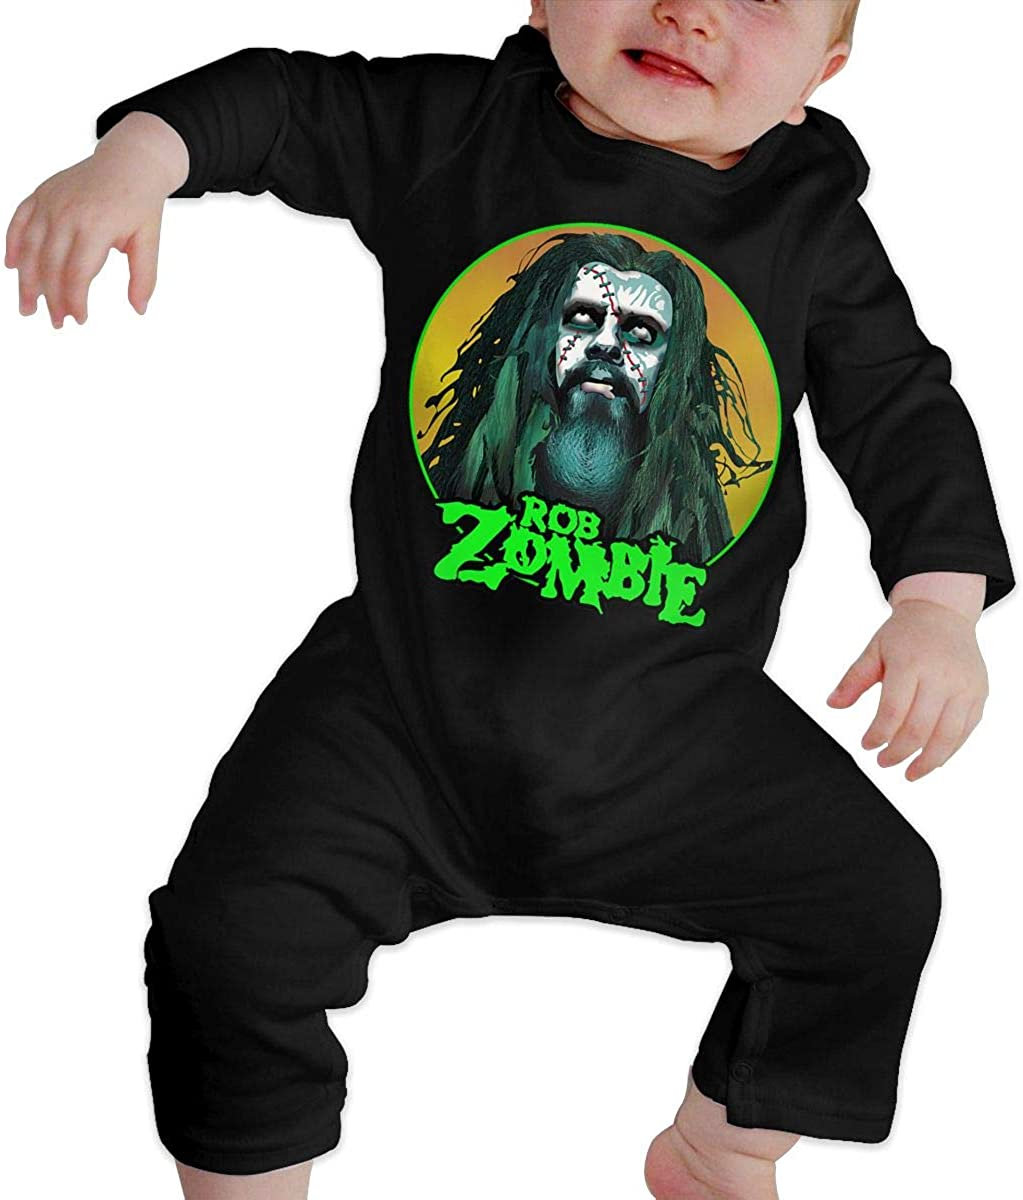 TheresaTucker Rob Zombie Unisex Baby Jumpsuit Cotton Romper Long Sleeve Bodysuit Infant Outfit 6-24 Month